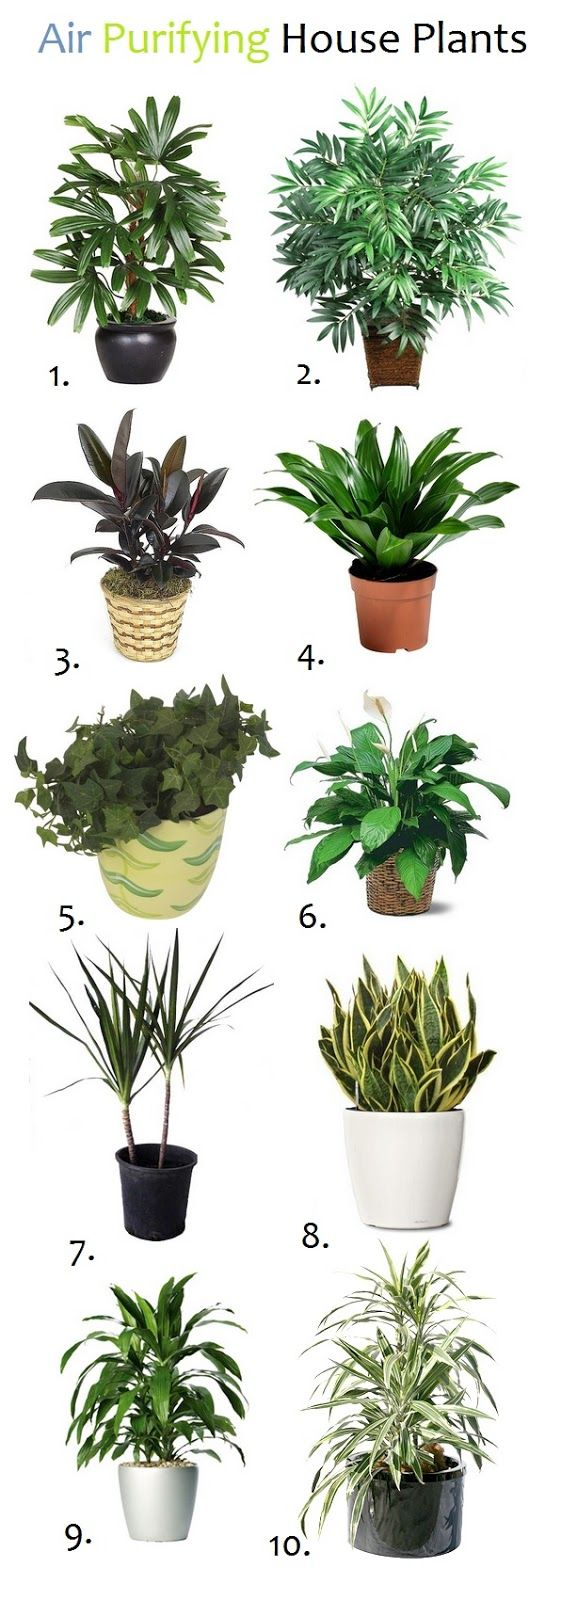 10 Air Purifying House Plants As a side note, one of the plants NASA studied is…